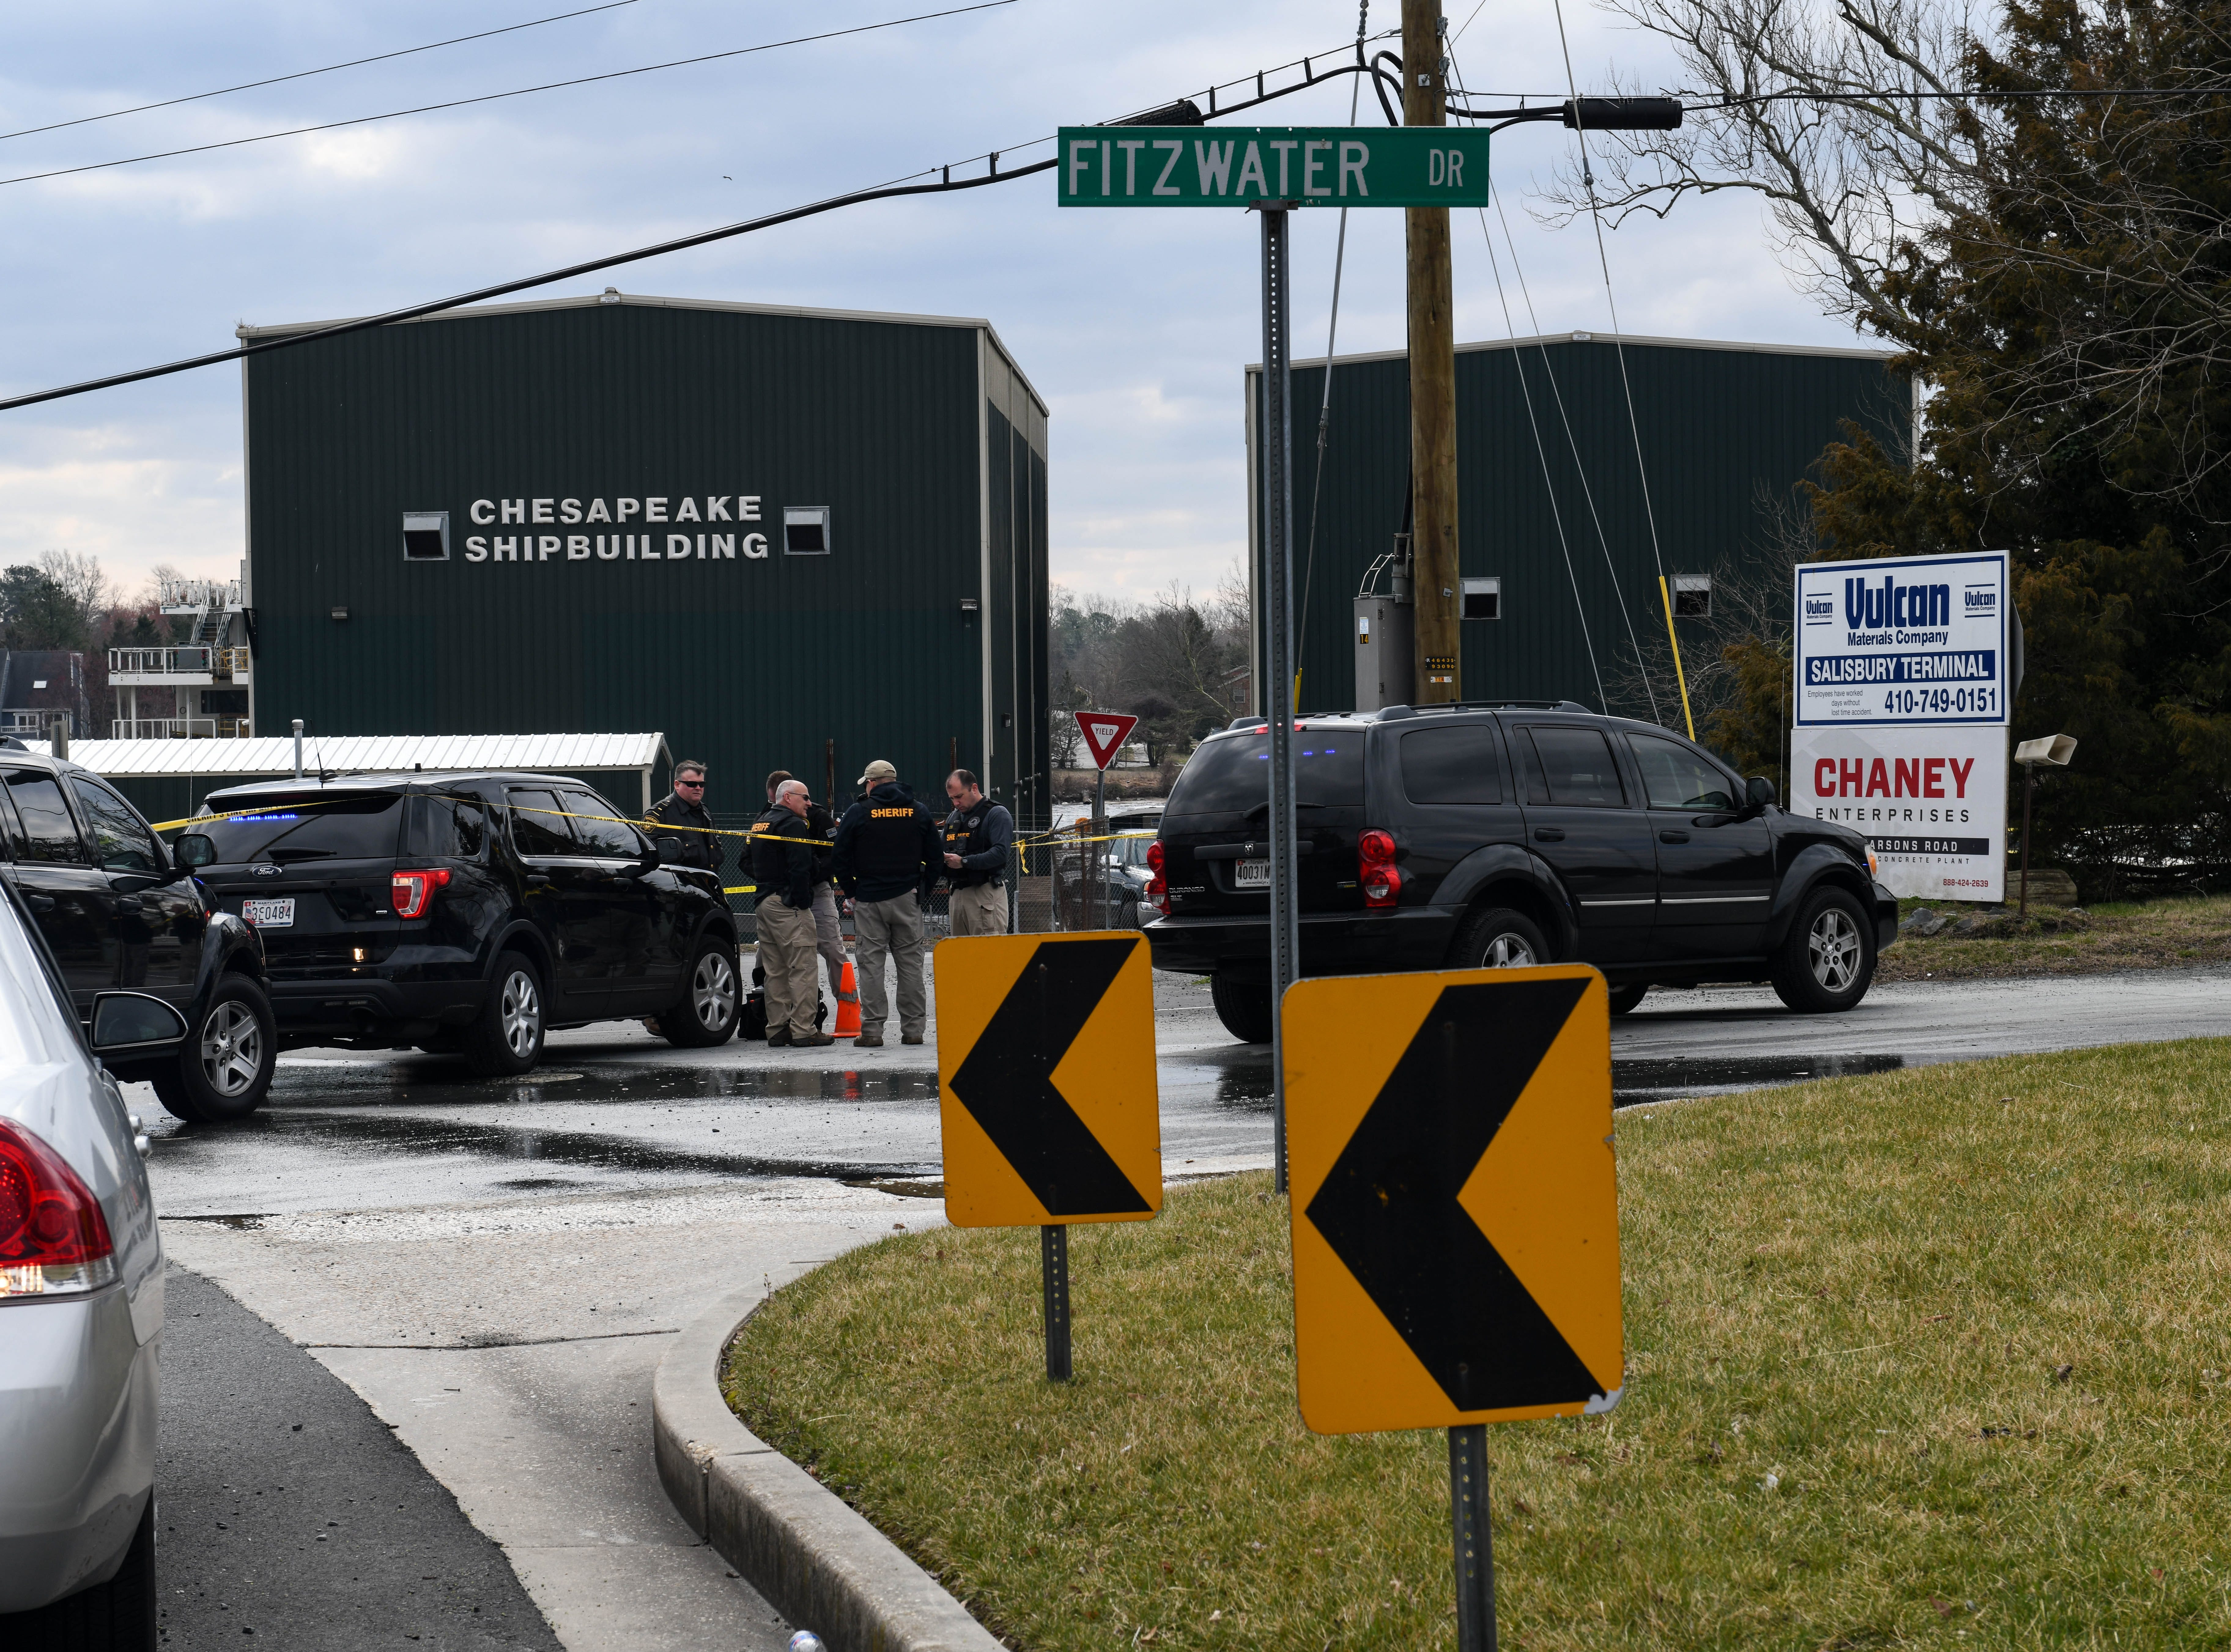 Law enforcement officials have blocked traffic on Fitzwater Street and Parsons Road and the surrounding area following a morning car chase on Friday, March 22, 2019.